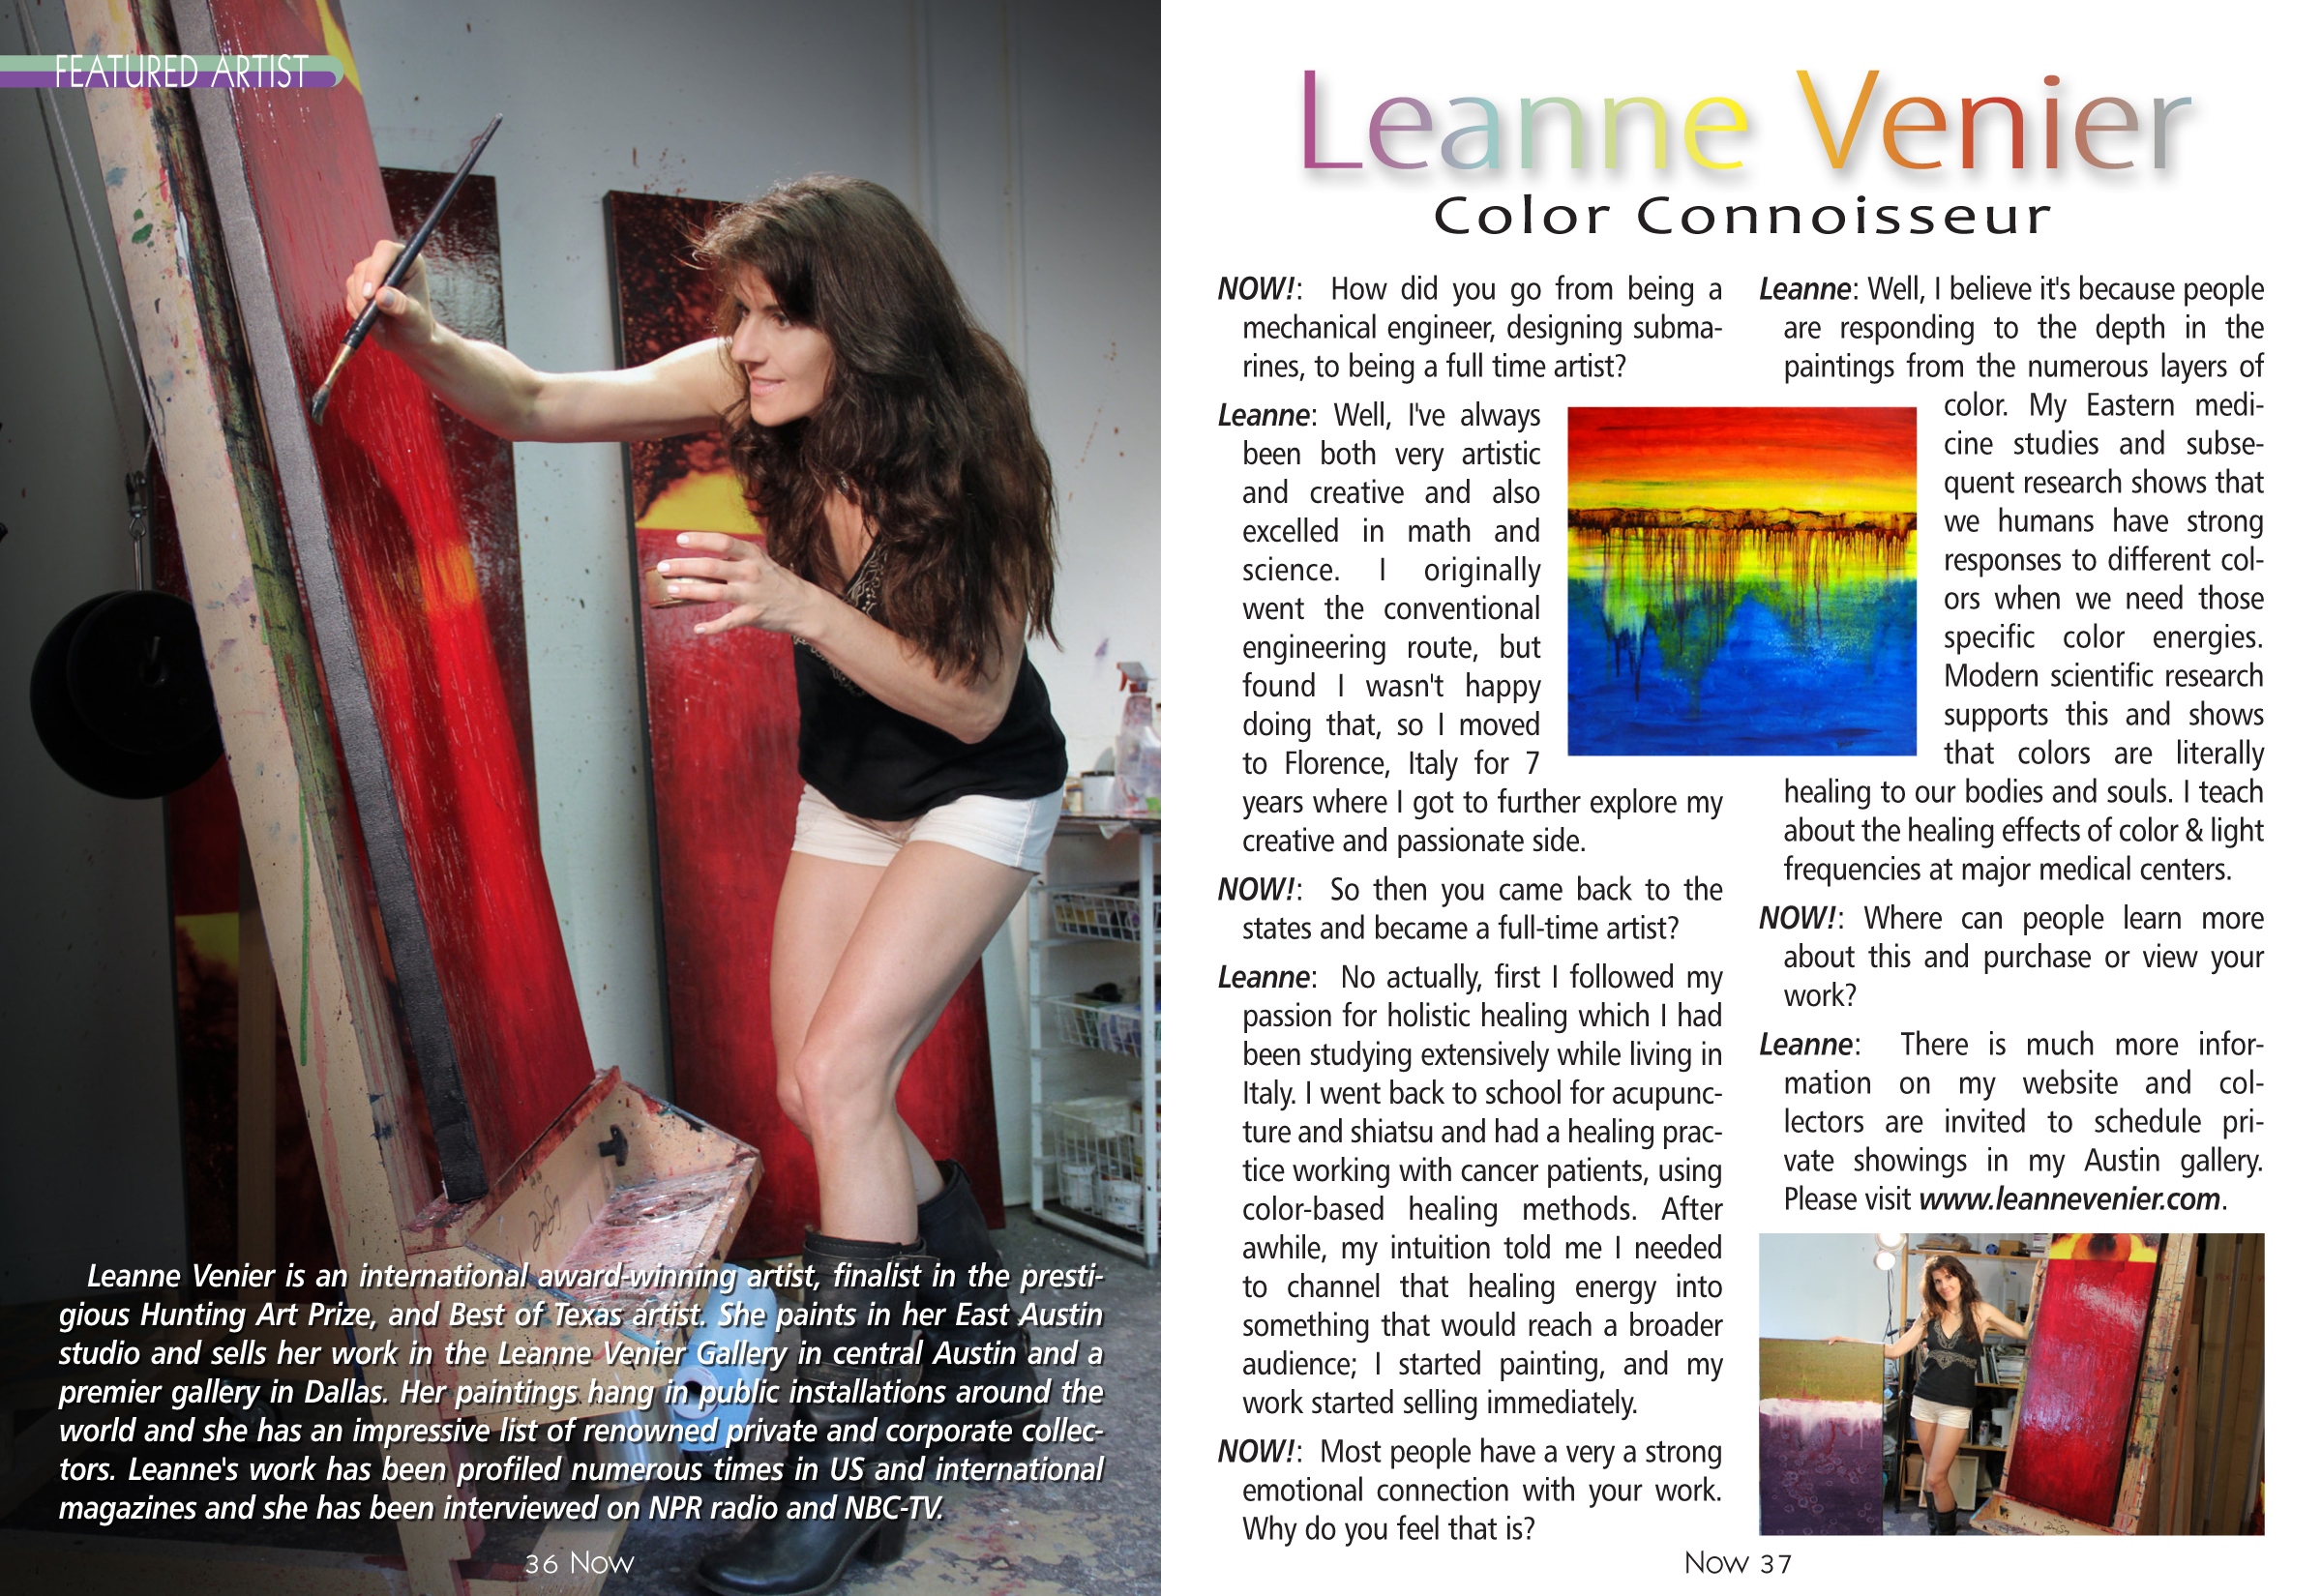 Leanne Venier Featured Artist for NOW! Magazine